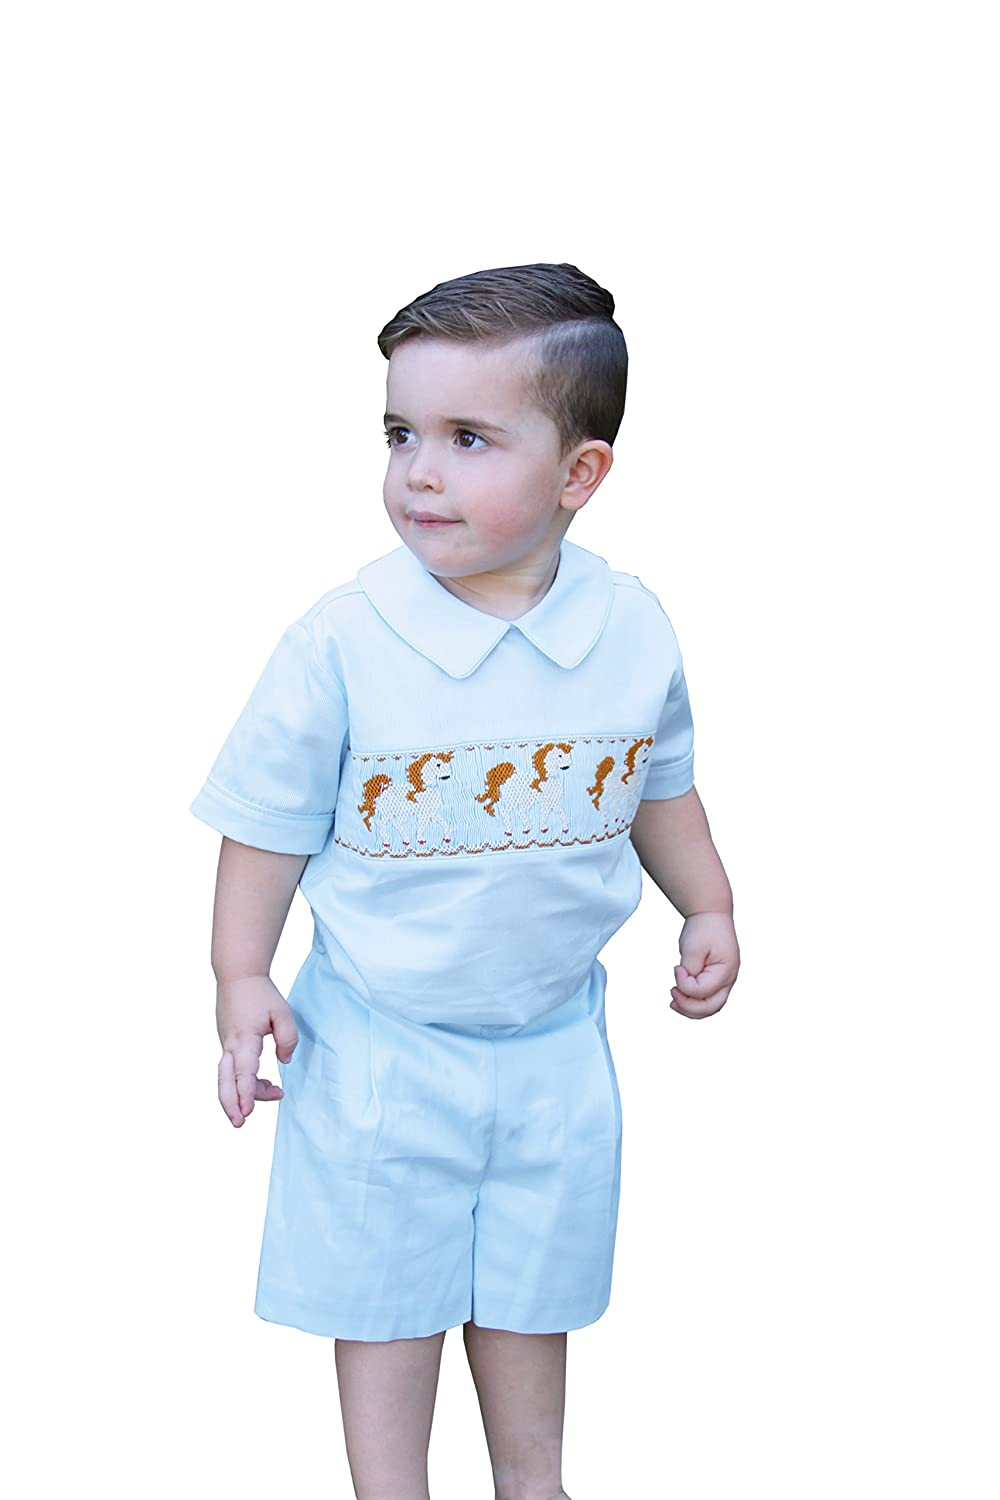 1940s Children's Clothing: Girls, Boys, Baby, Toddler Carouselwear Boys Smocked Shirt and Shorts Set Suit with Horses $49.00 AT vintagedancer.com